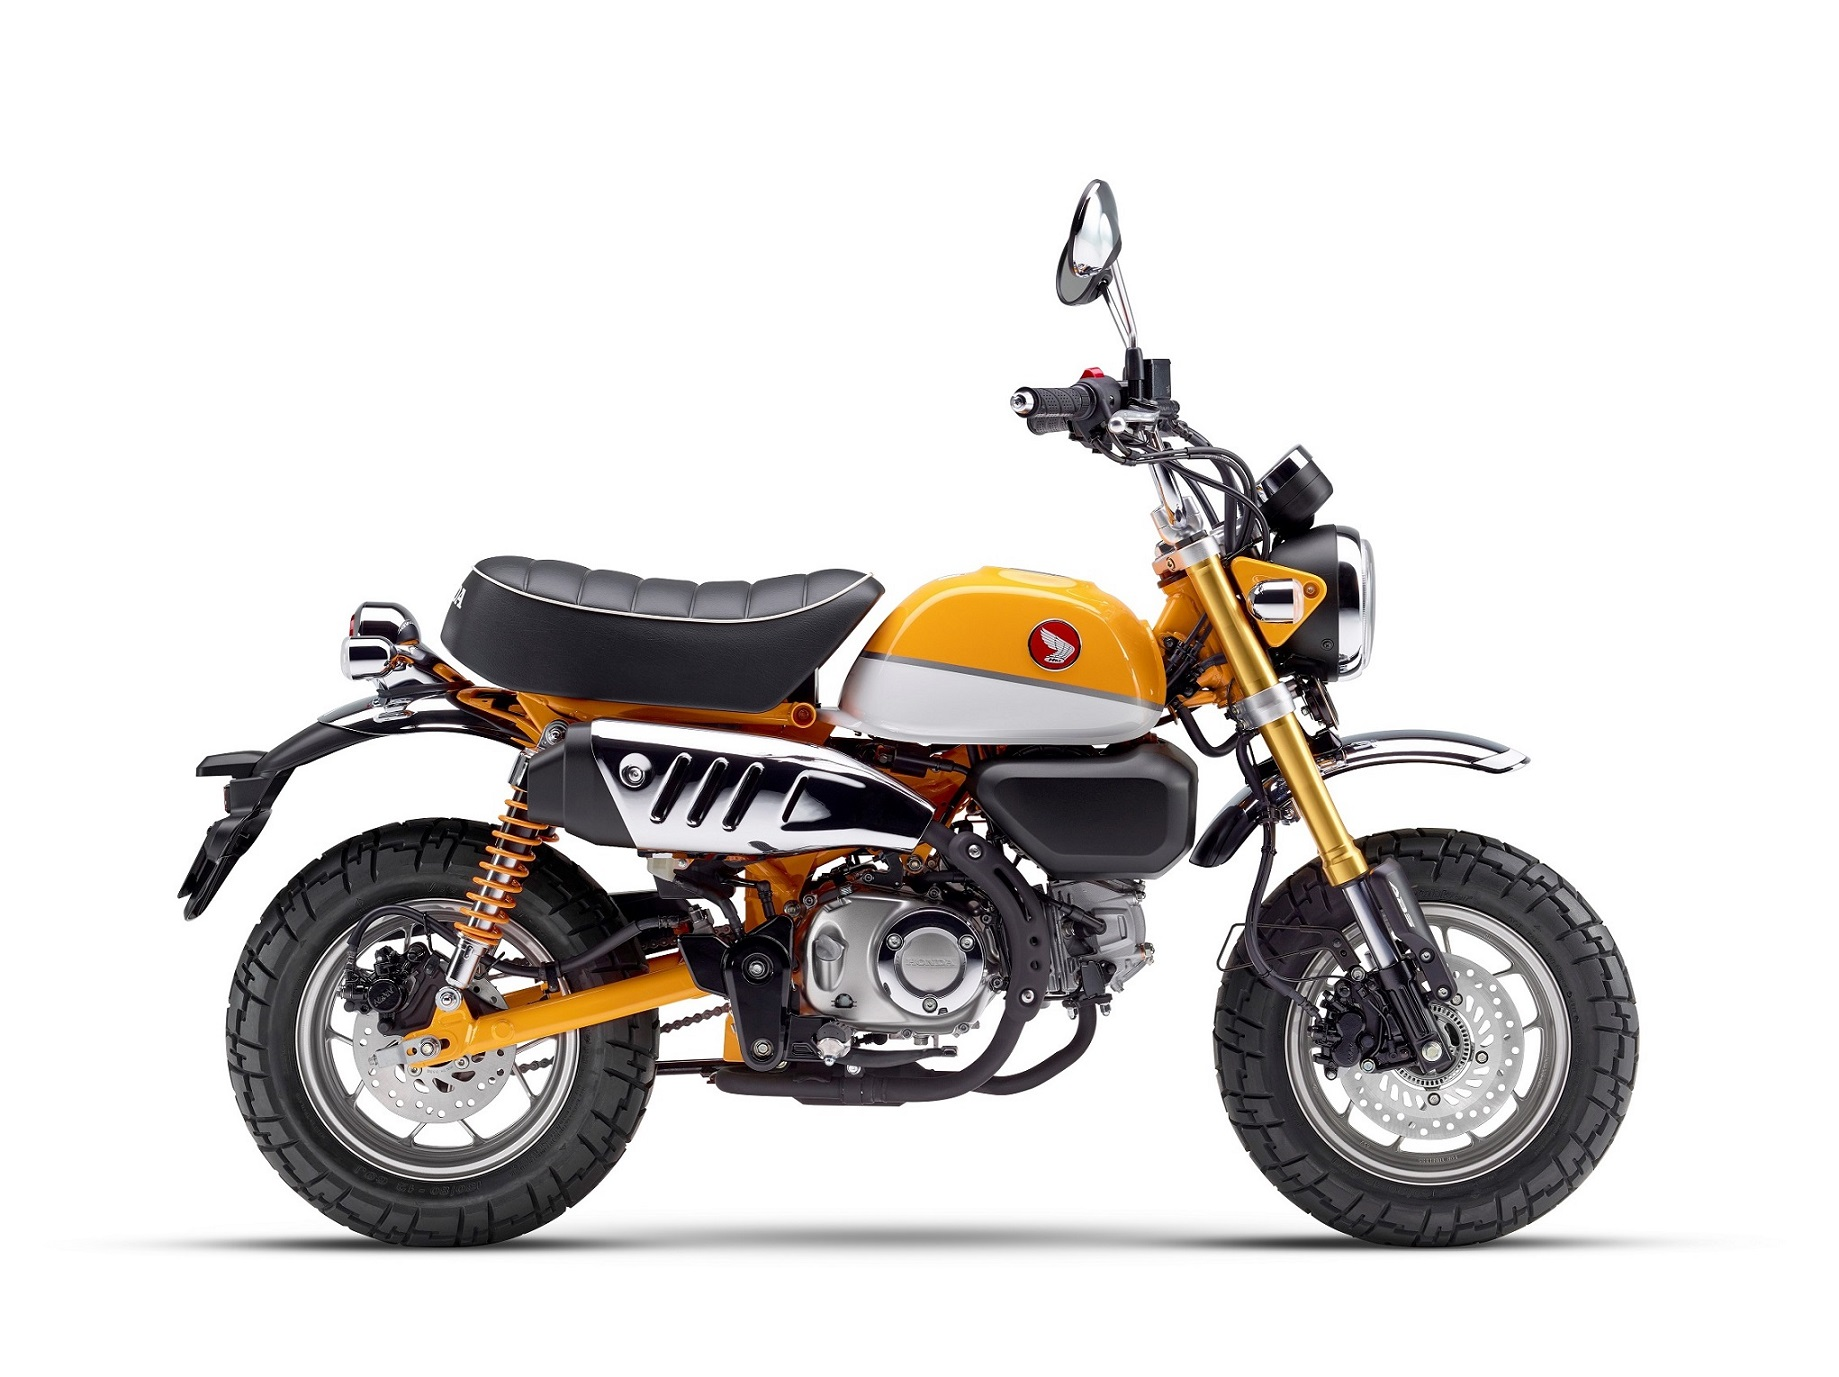 Honda Monkey 125 ABS Warna Kuning Banana Yellow Indonesia